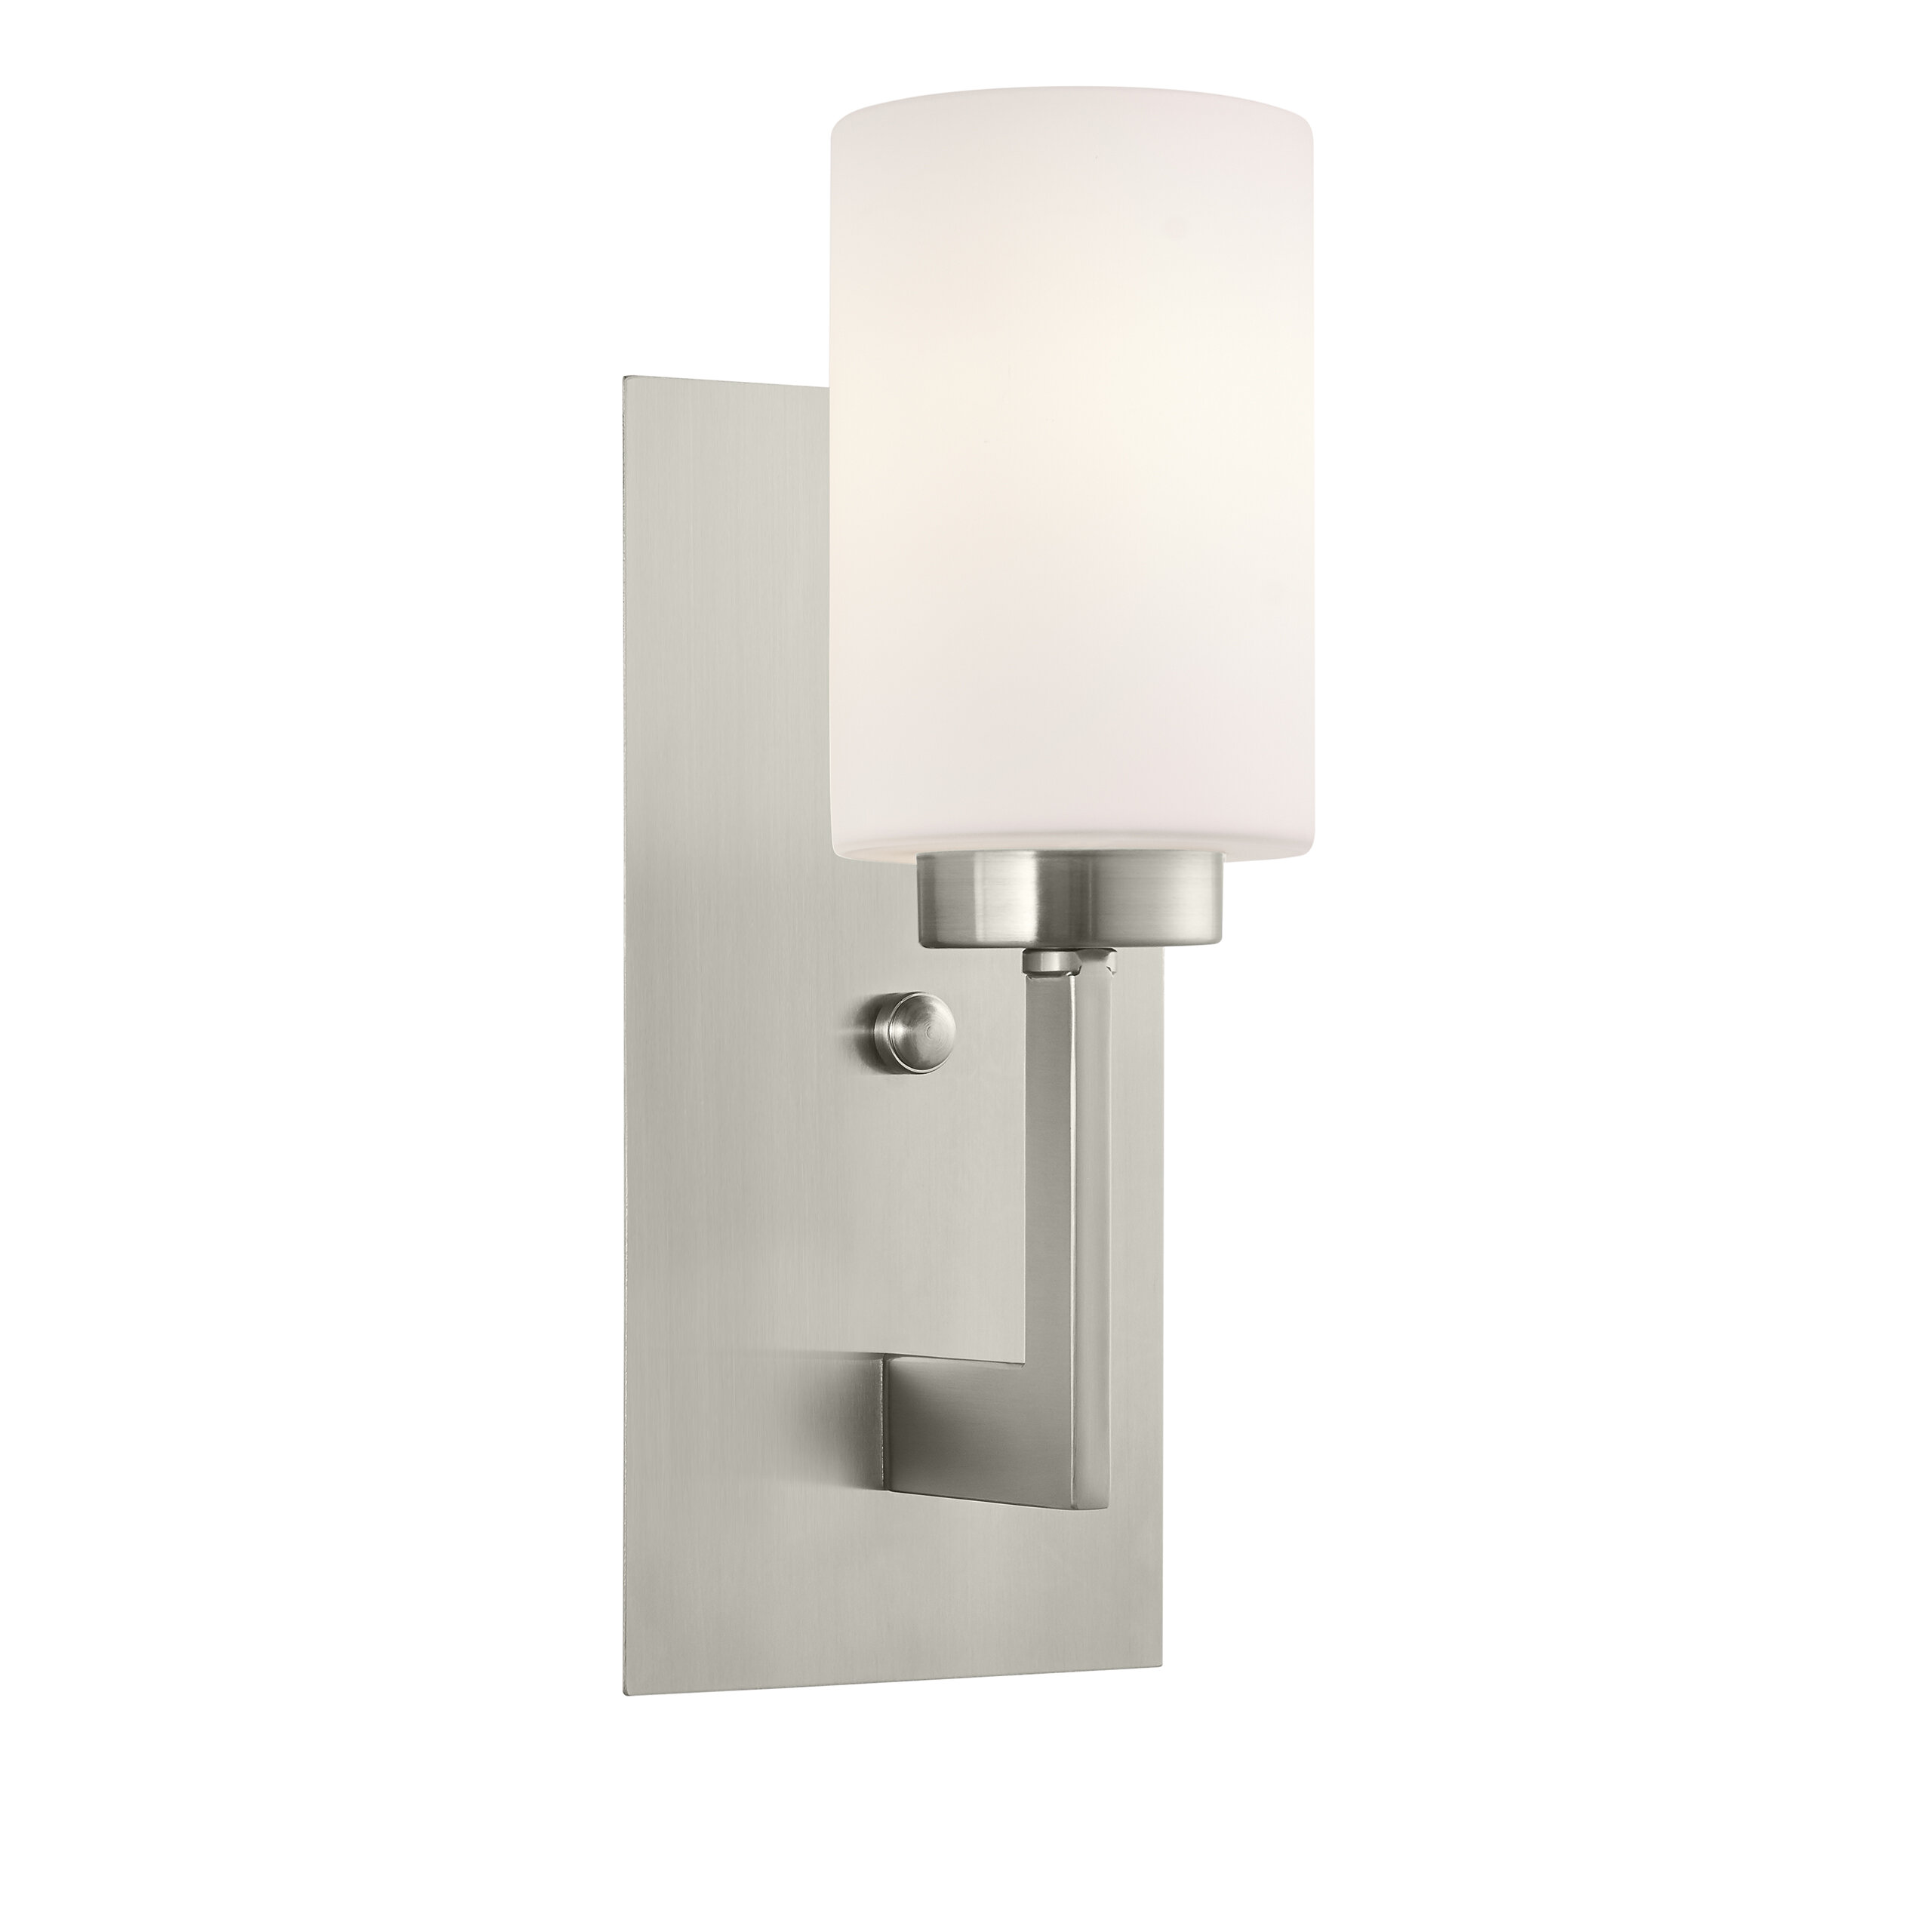 Ivy Bronx Cogswell 1 Light Armed Sconce Reviews Wayfair